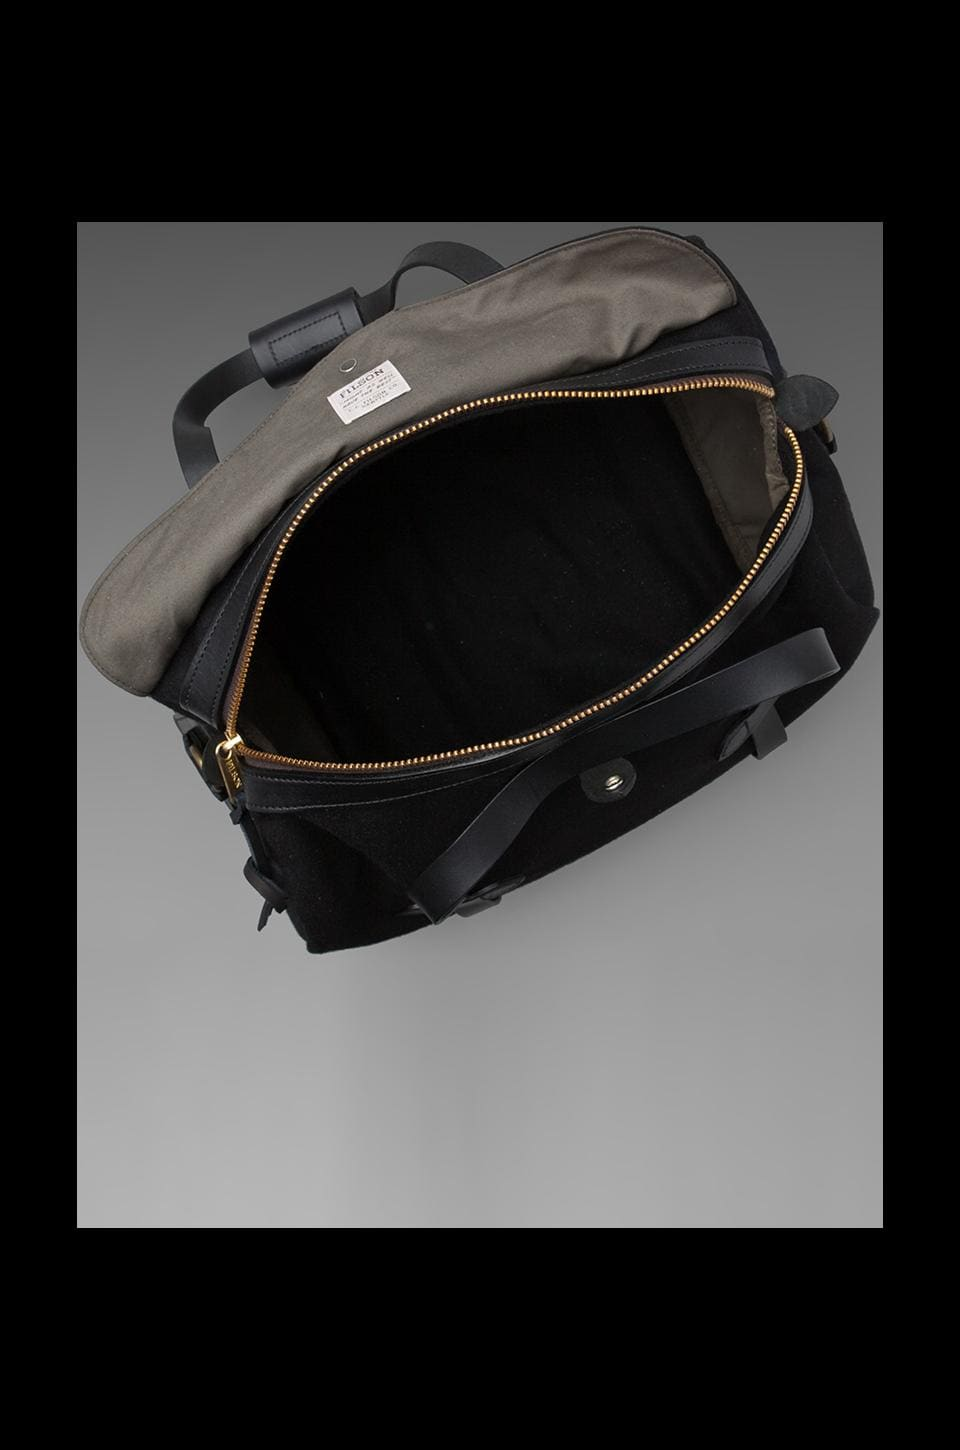 Filson White Label Wool Small Duffle Bag in Black